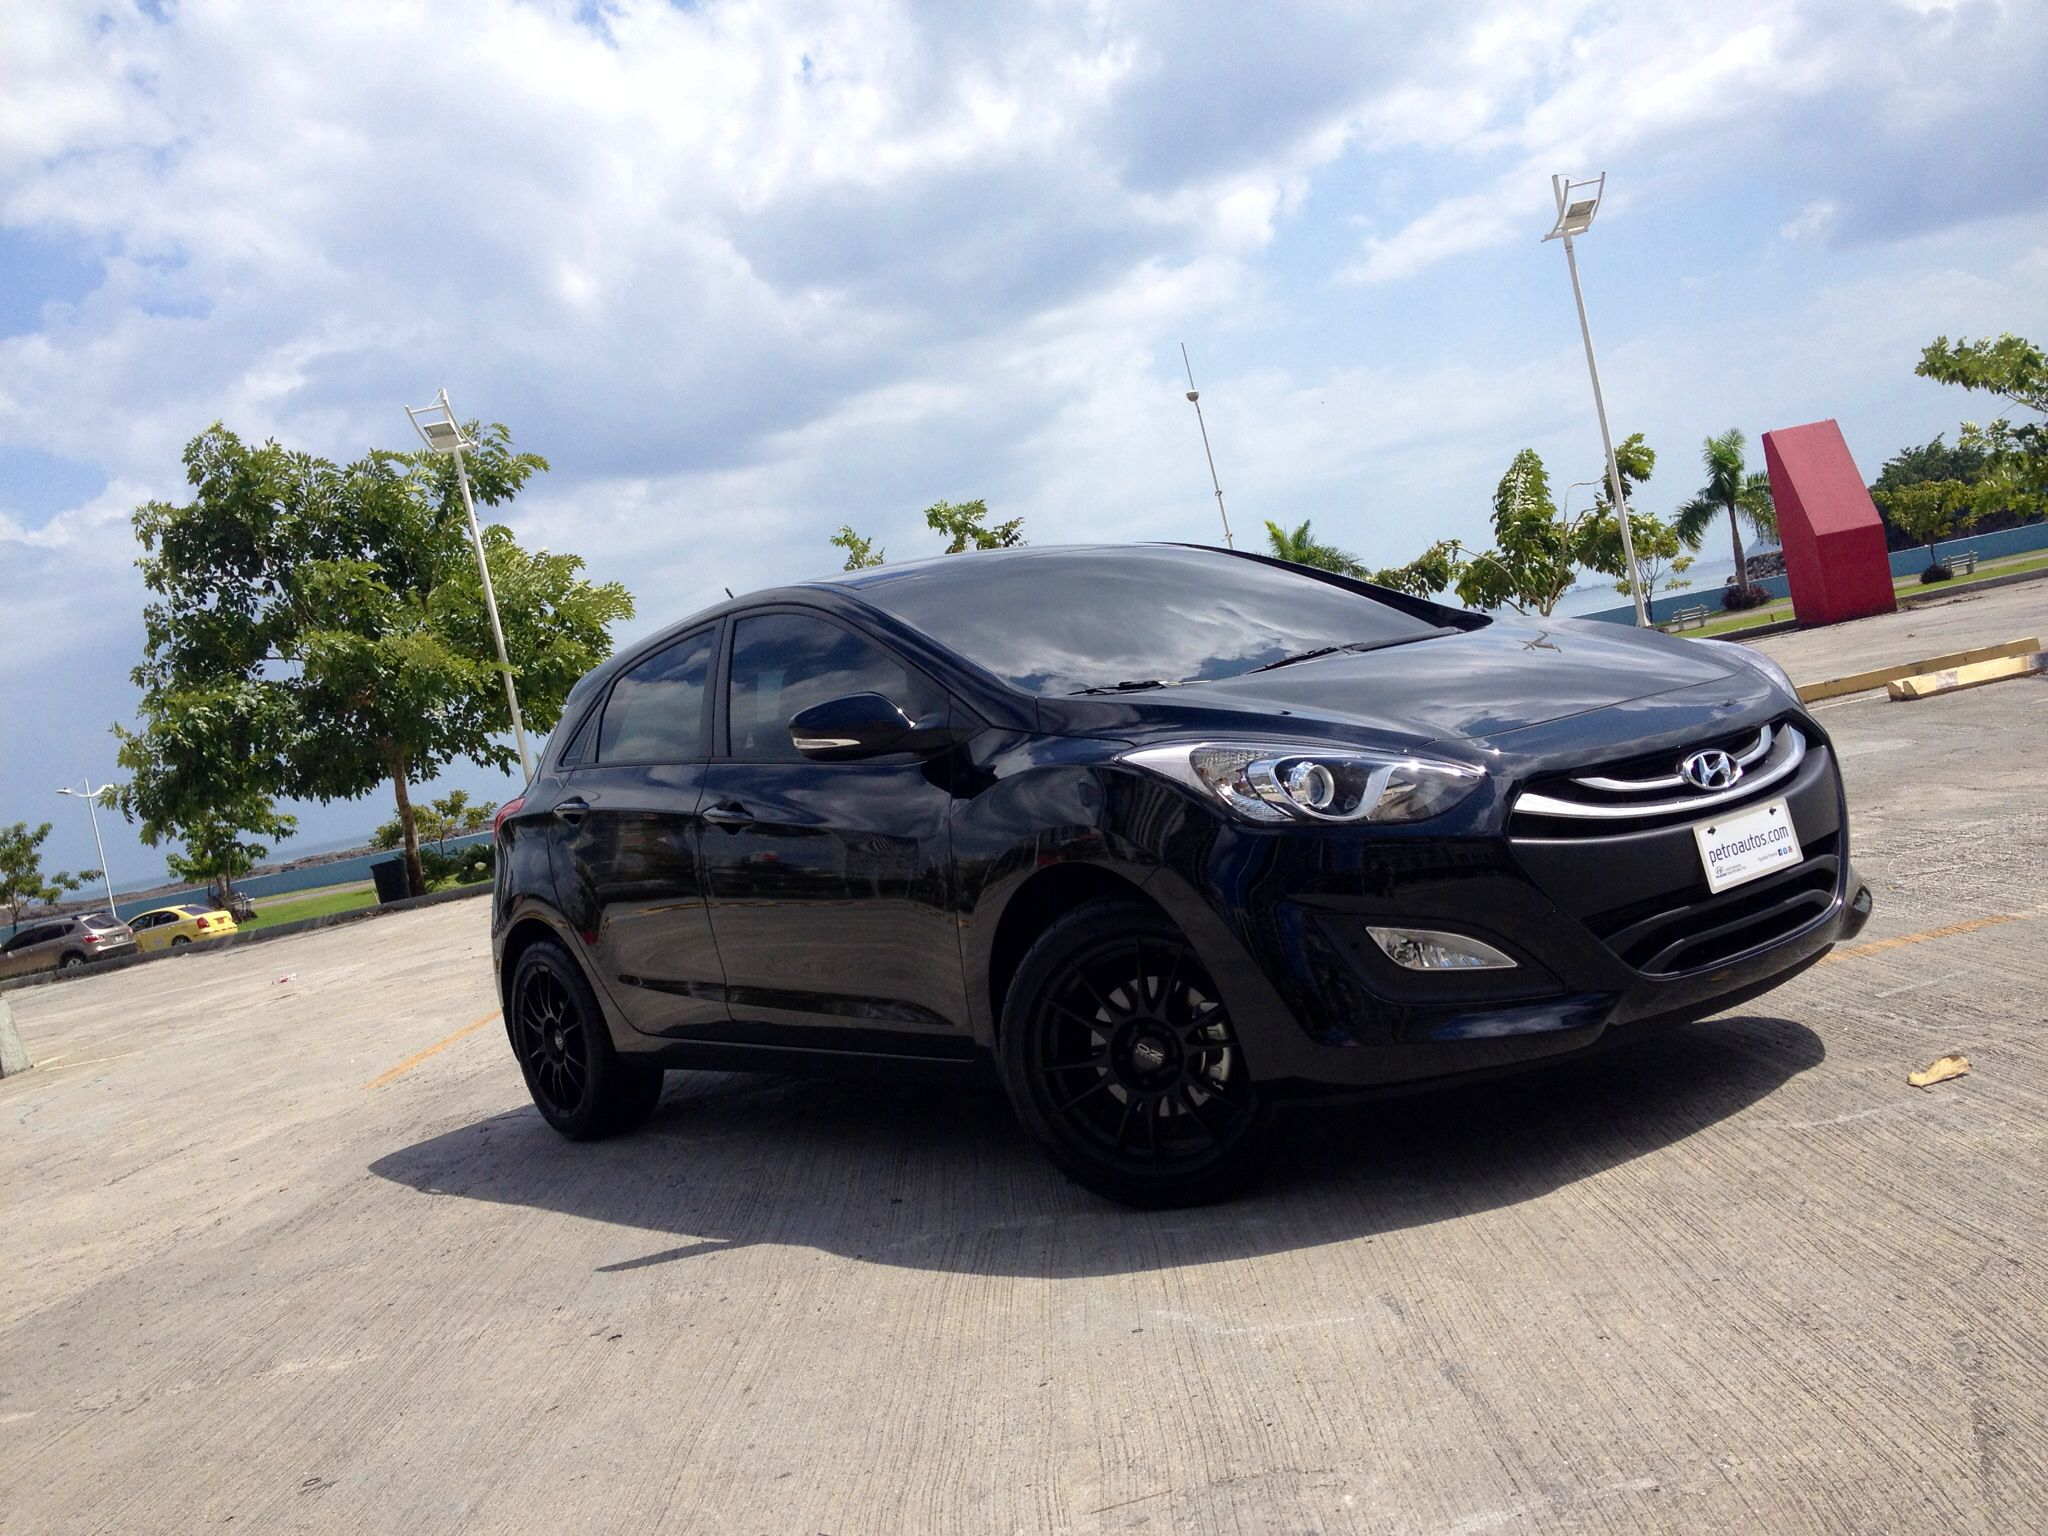 2015 hyundai sonata pricing options and specifications cleanmpg - Simple Look To Create A Sporty Hatchback Oz Ultraleggera Rims Johnson 20 Tinted Widows And Klight 6000k Hid Sporty Hyundai I30 Elantra Gt